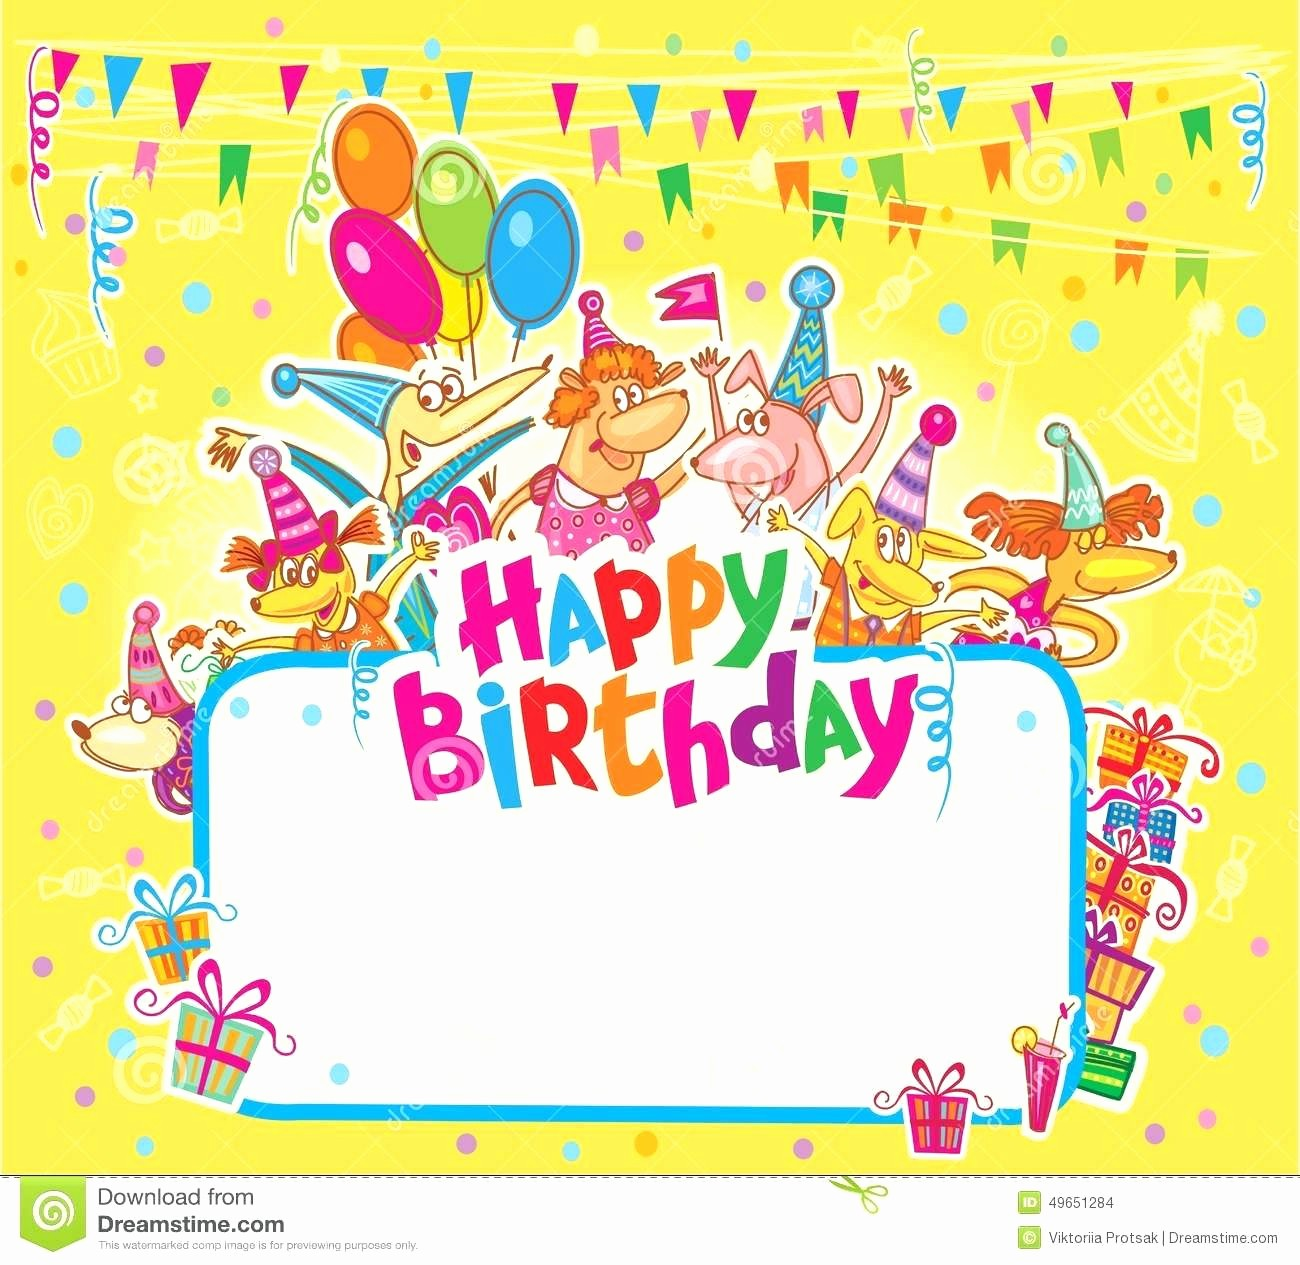 Microsoft Word Greeting Card Template Awesome Template Happy Birthday Card Template Word